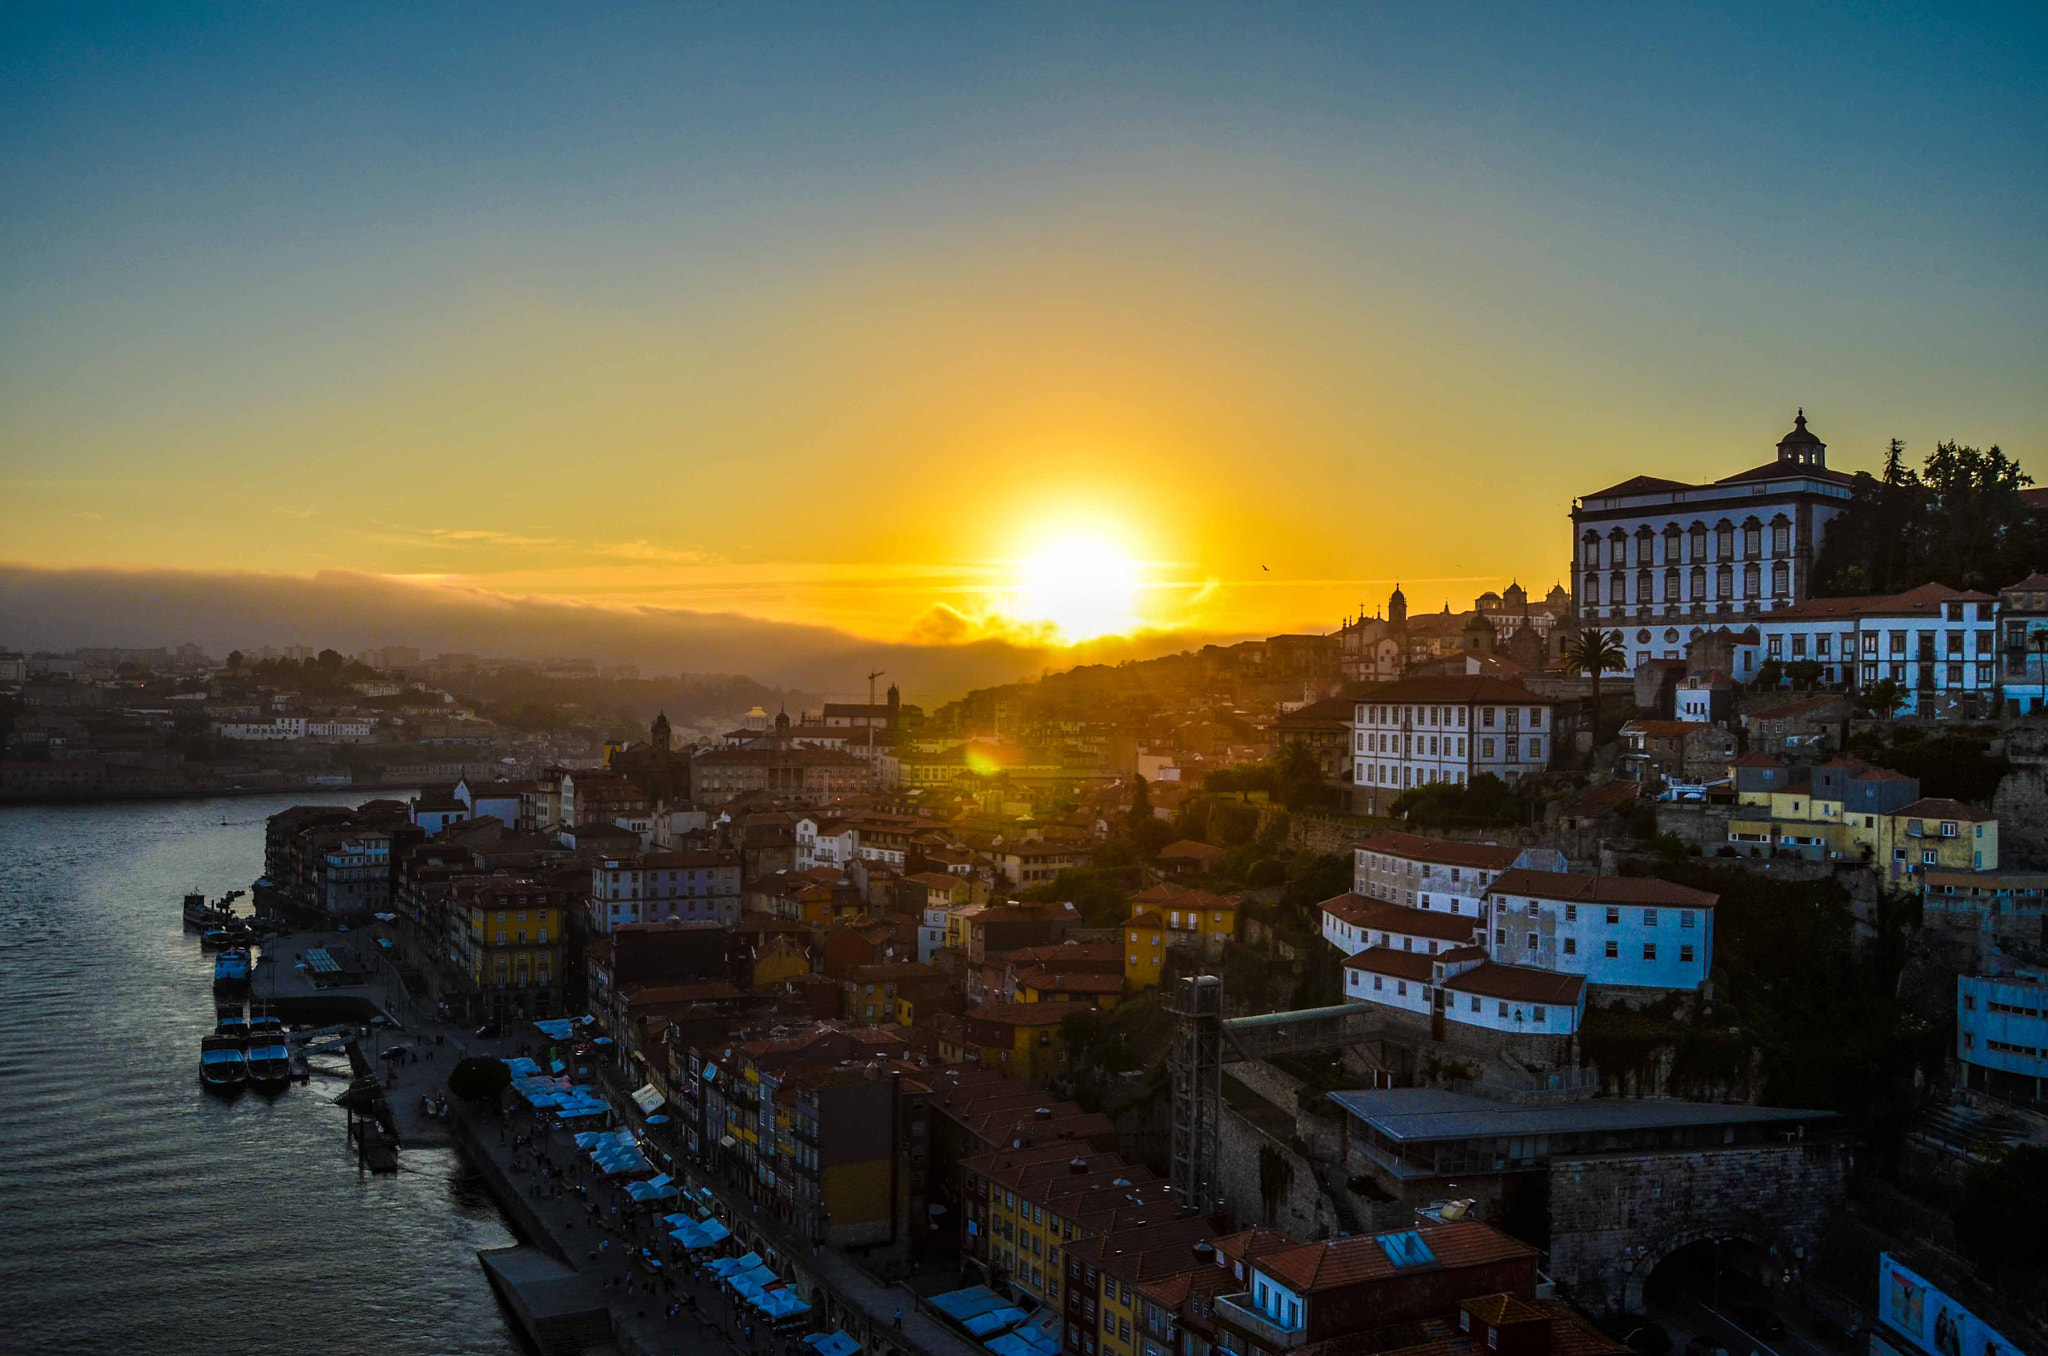 Photograph Near the Douro by Pierre  Brinas on 500px